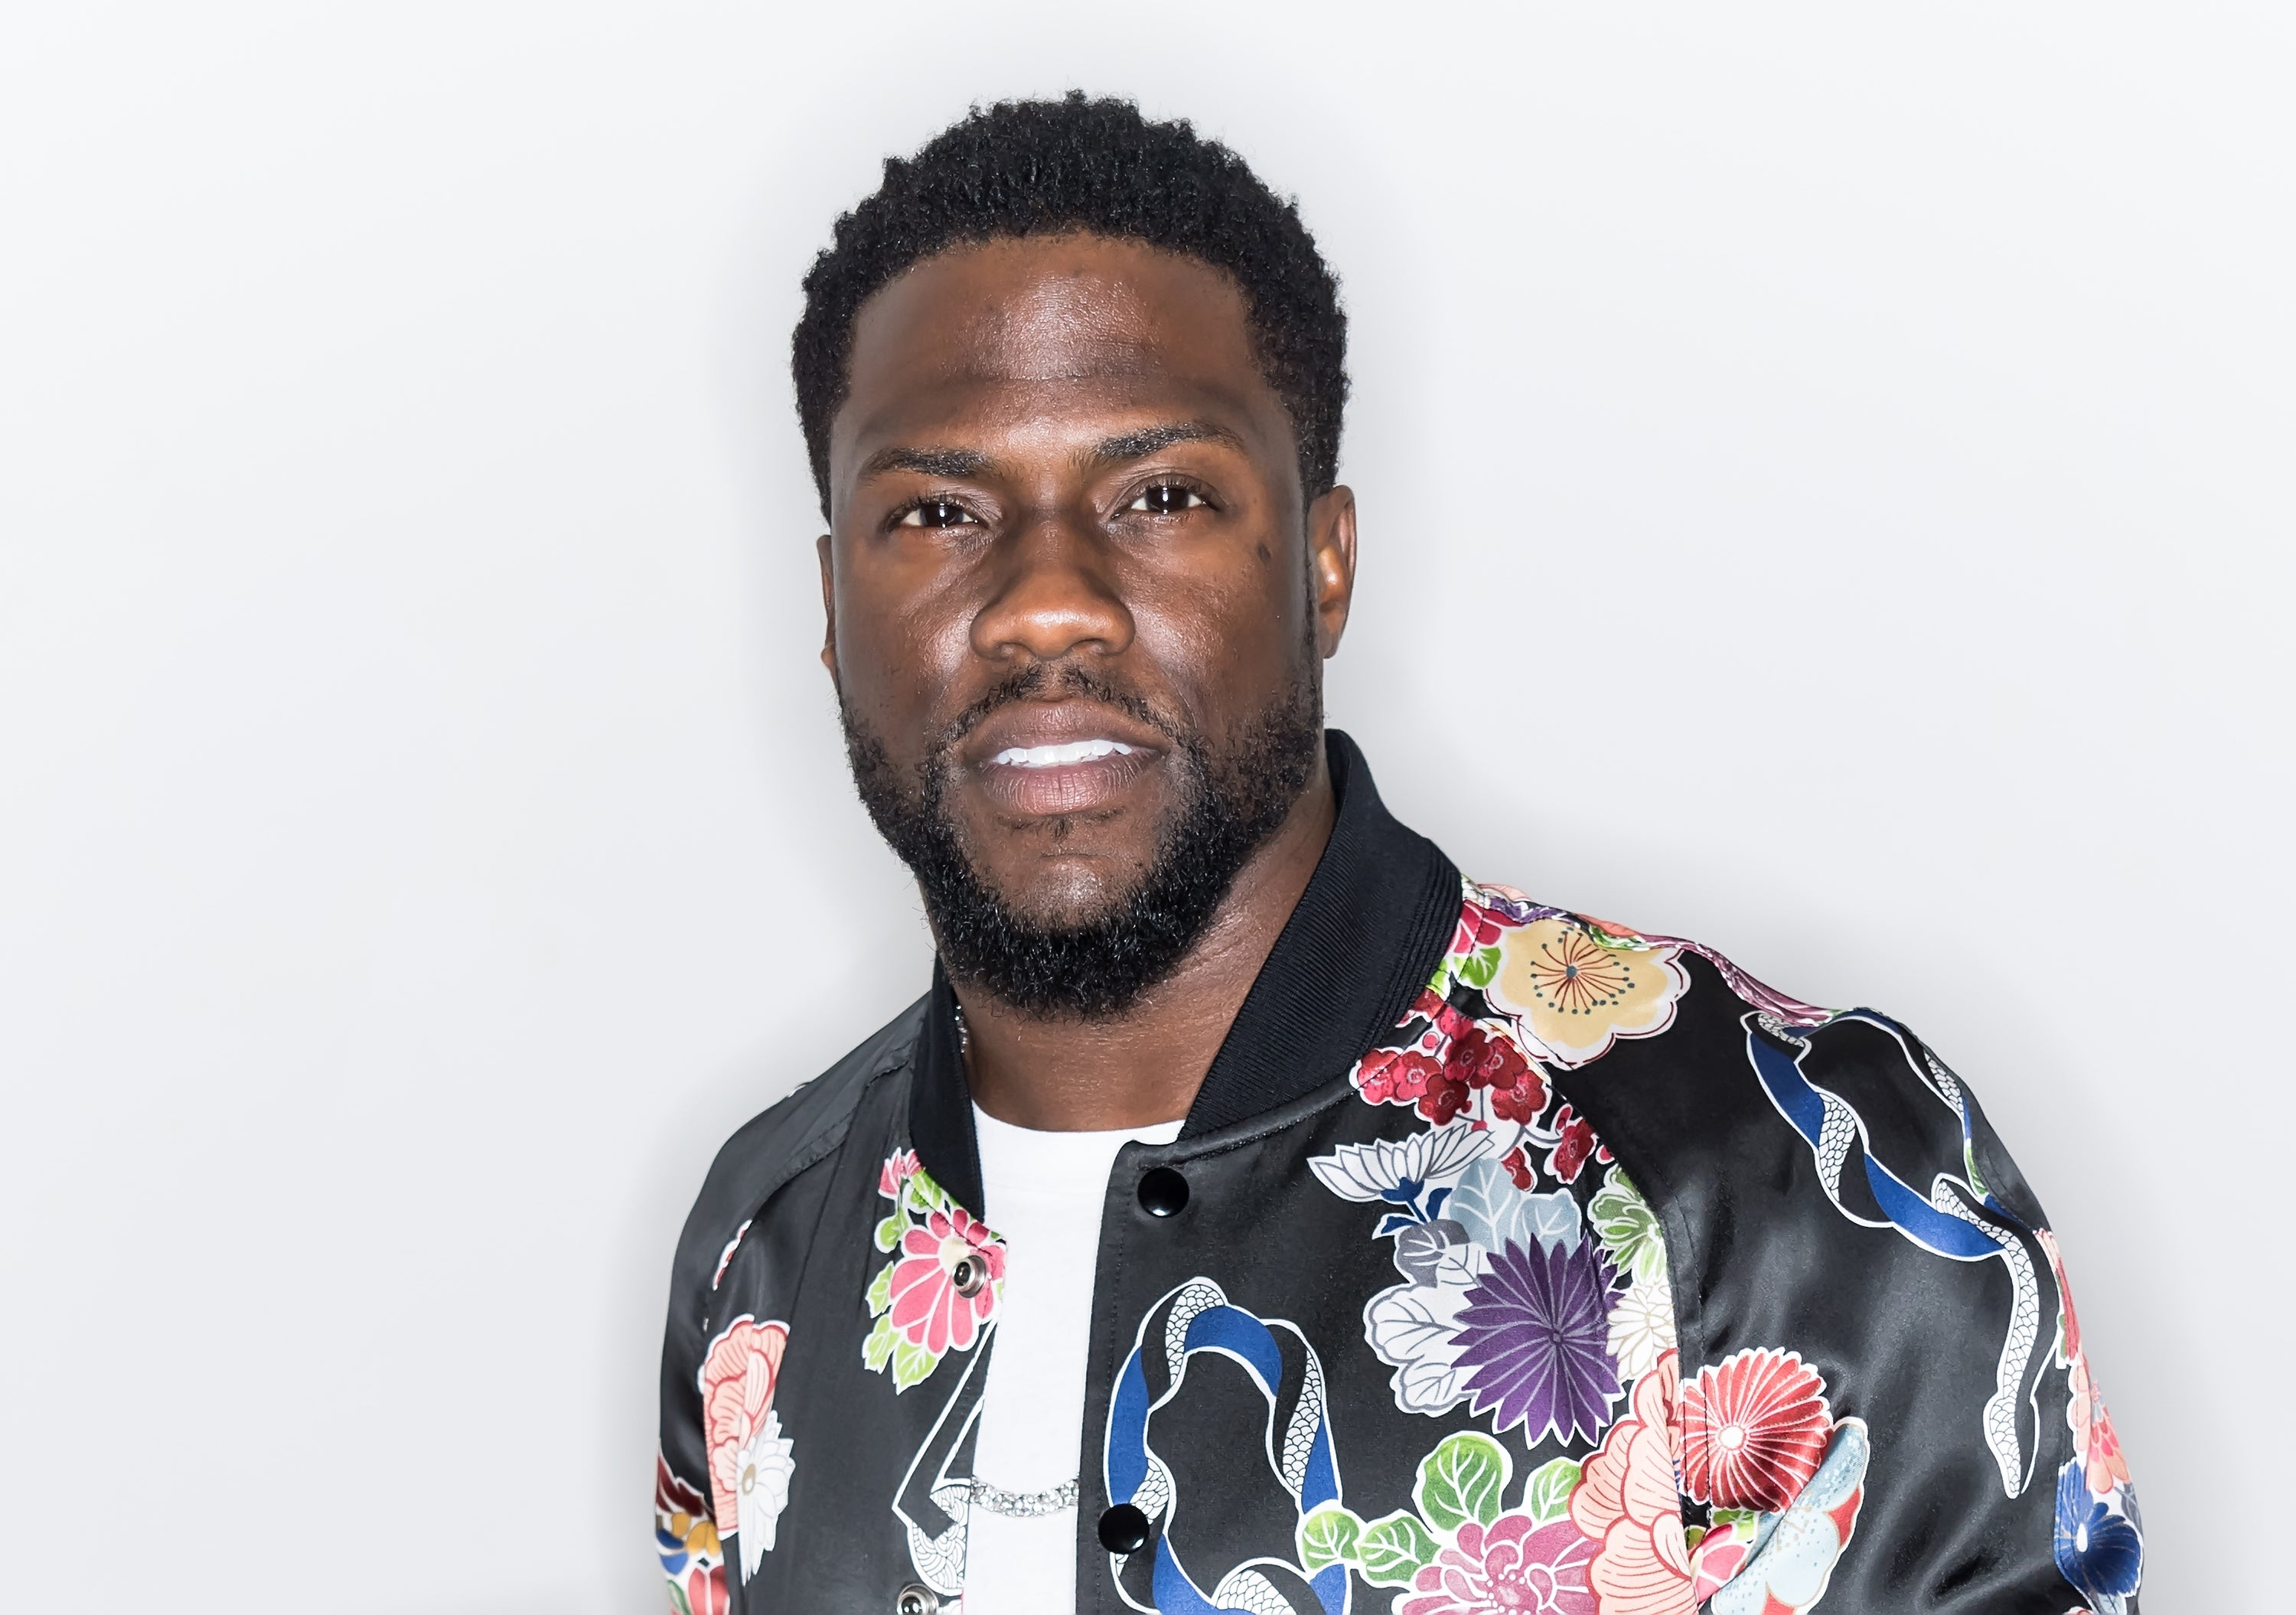 Kevin Hart Admits He's 'Guilty' Of Cheating On Pregnant Wife: 'Not the Finest Hour Of My Life'